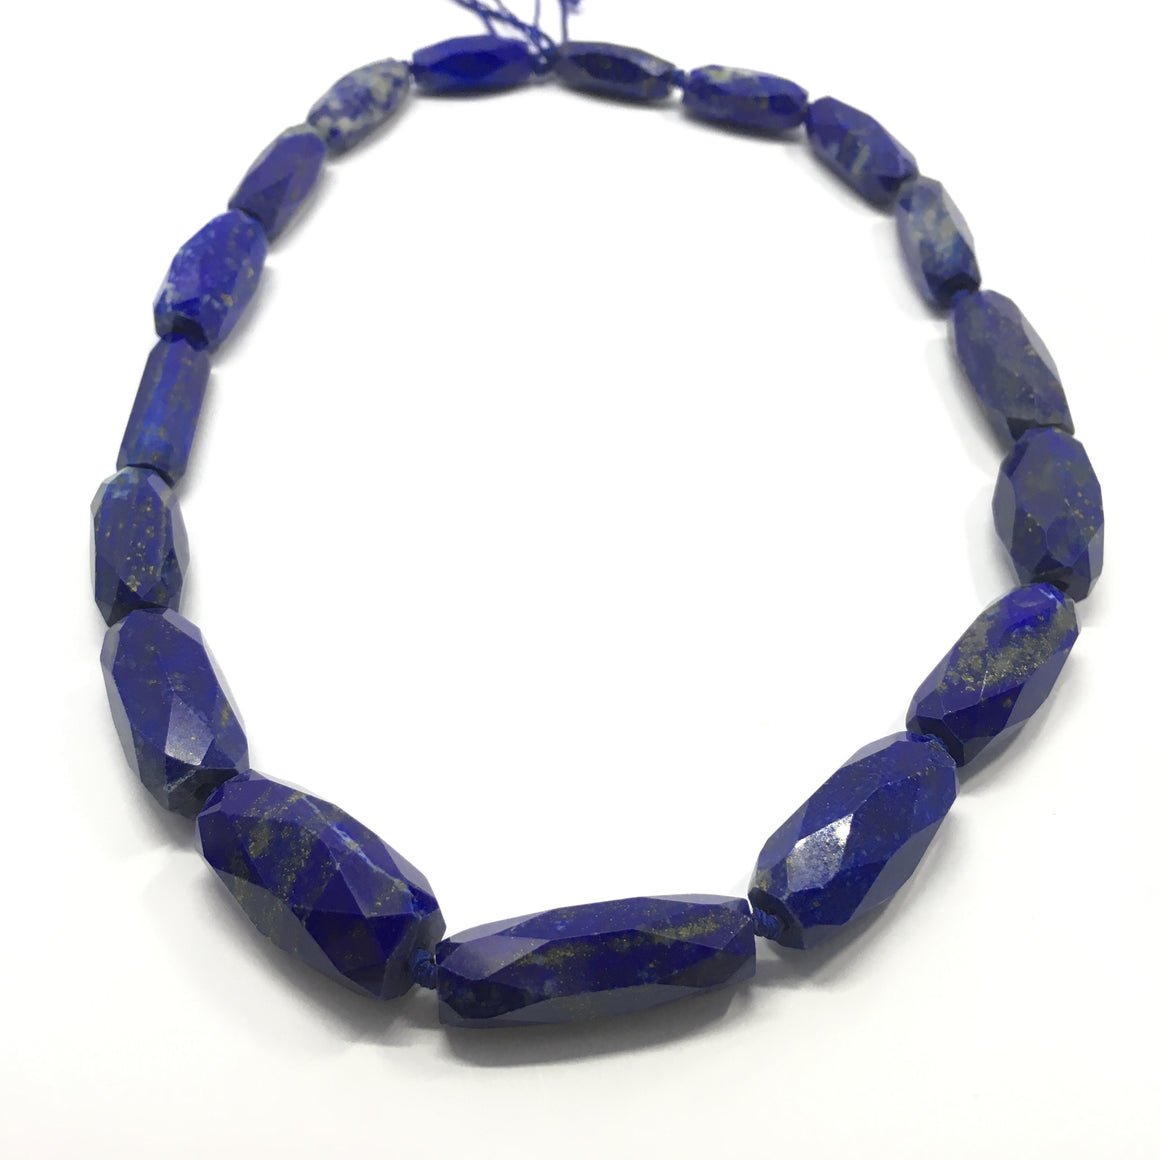 Lapis Lazuli Necklace - Lapis Necklace Marquise Cut Beads - 261.5 ct